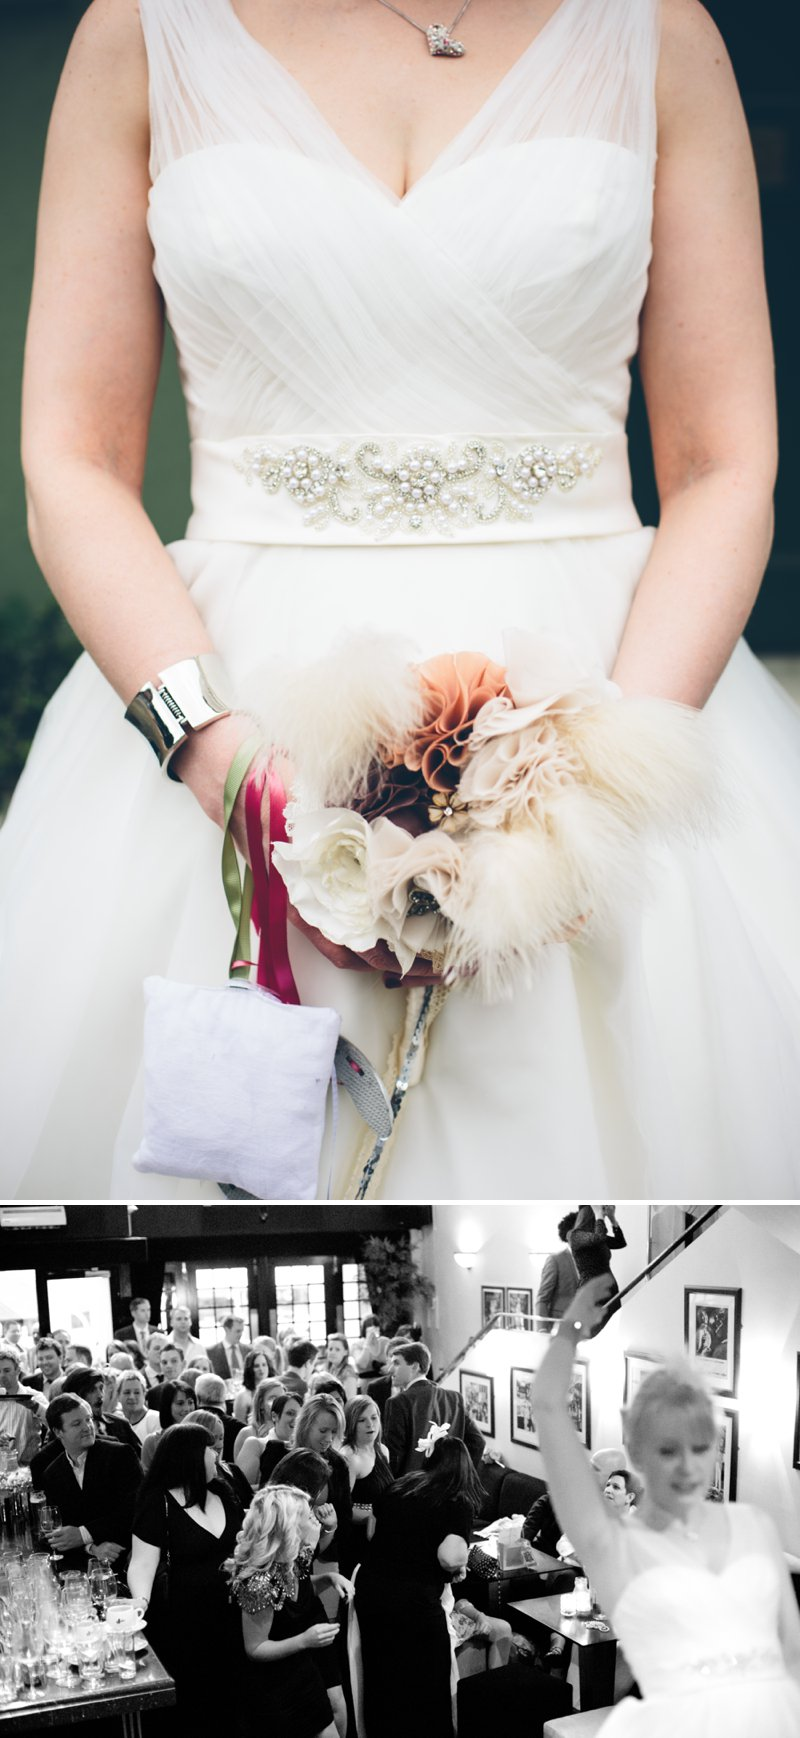 Traditional Church Wedding Of Rock My Wedding Real Bride Rebecca With Bird Cage Veil And Ellis Brides Gown Rolls Royce For Wedding Car And Fabric Flowers For Bouquets And Buttonholes With Groom And Groomsmen In Grey Suits From Debenhams 6